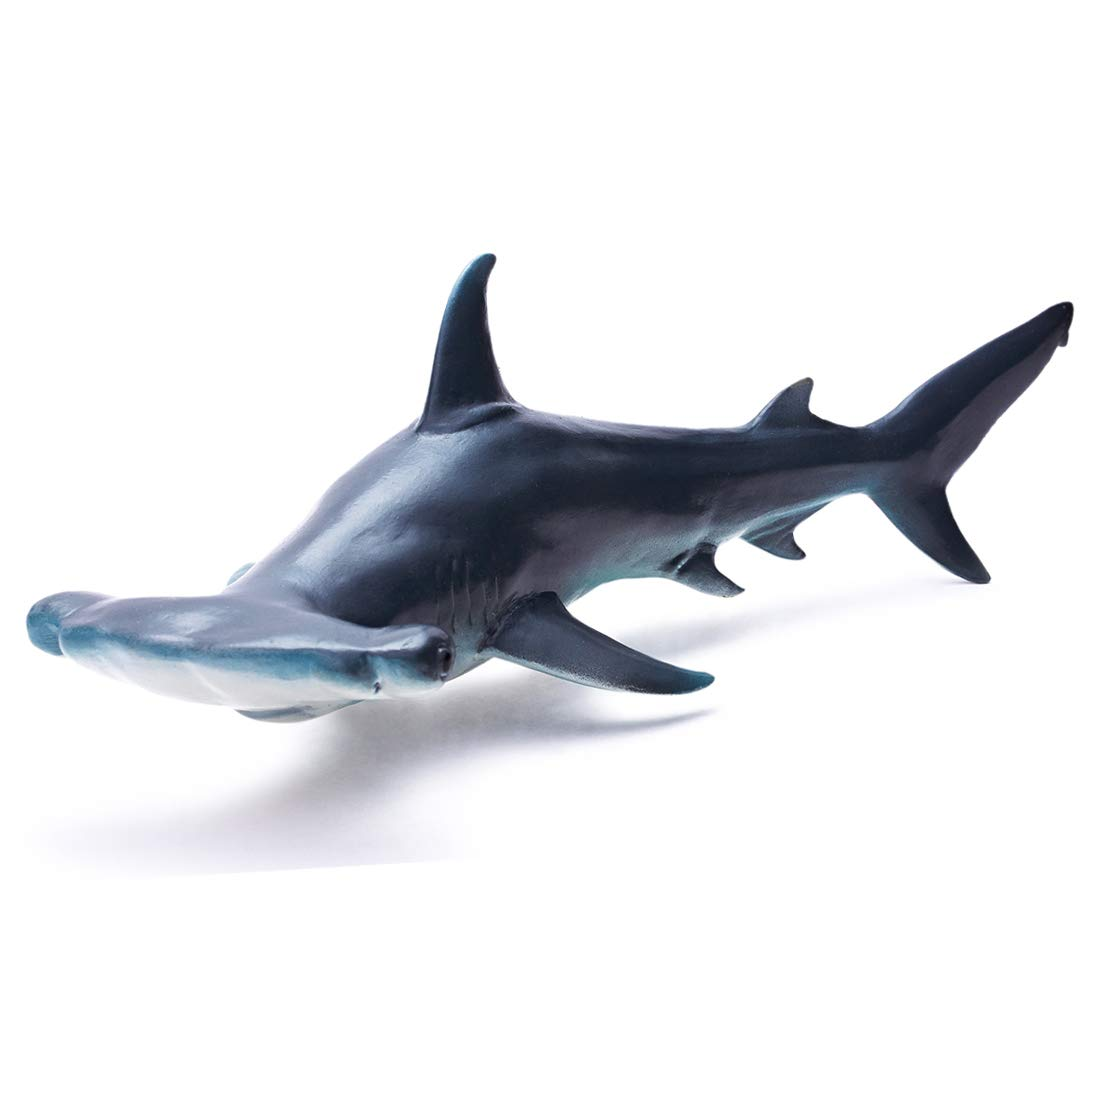 RECUR Toys Hammerhead Shark Figure Toys, Hand-Painted Skin Texture Ocean Shark Figurine Collection-10.8inch Realistic Design Shark Replica 1:15 Scale, Gift for Collectors and Boys Kids , Ages 3 And Up by RECUR